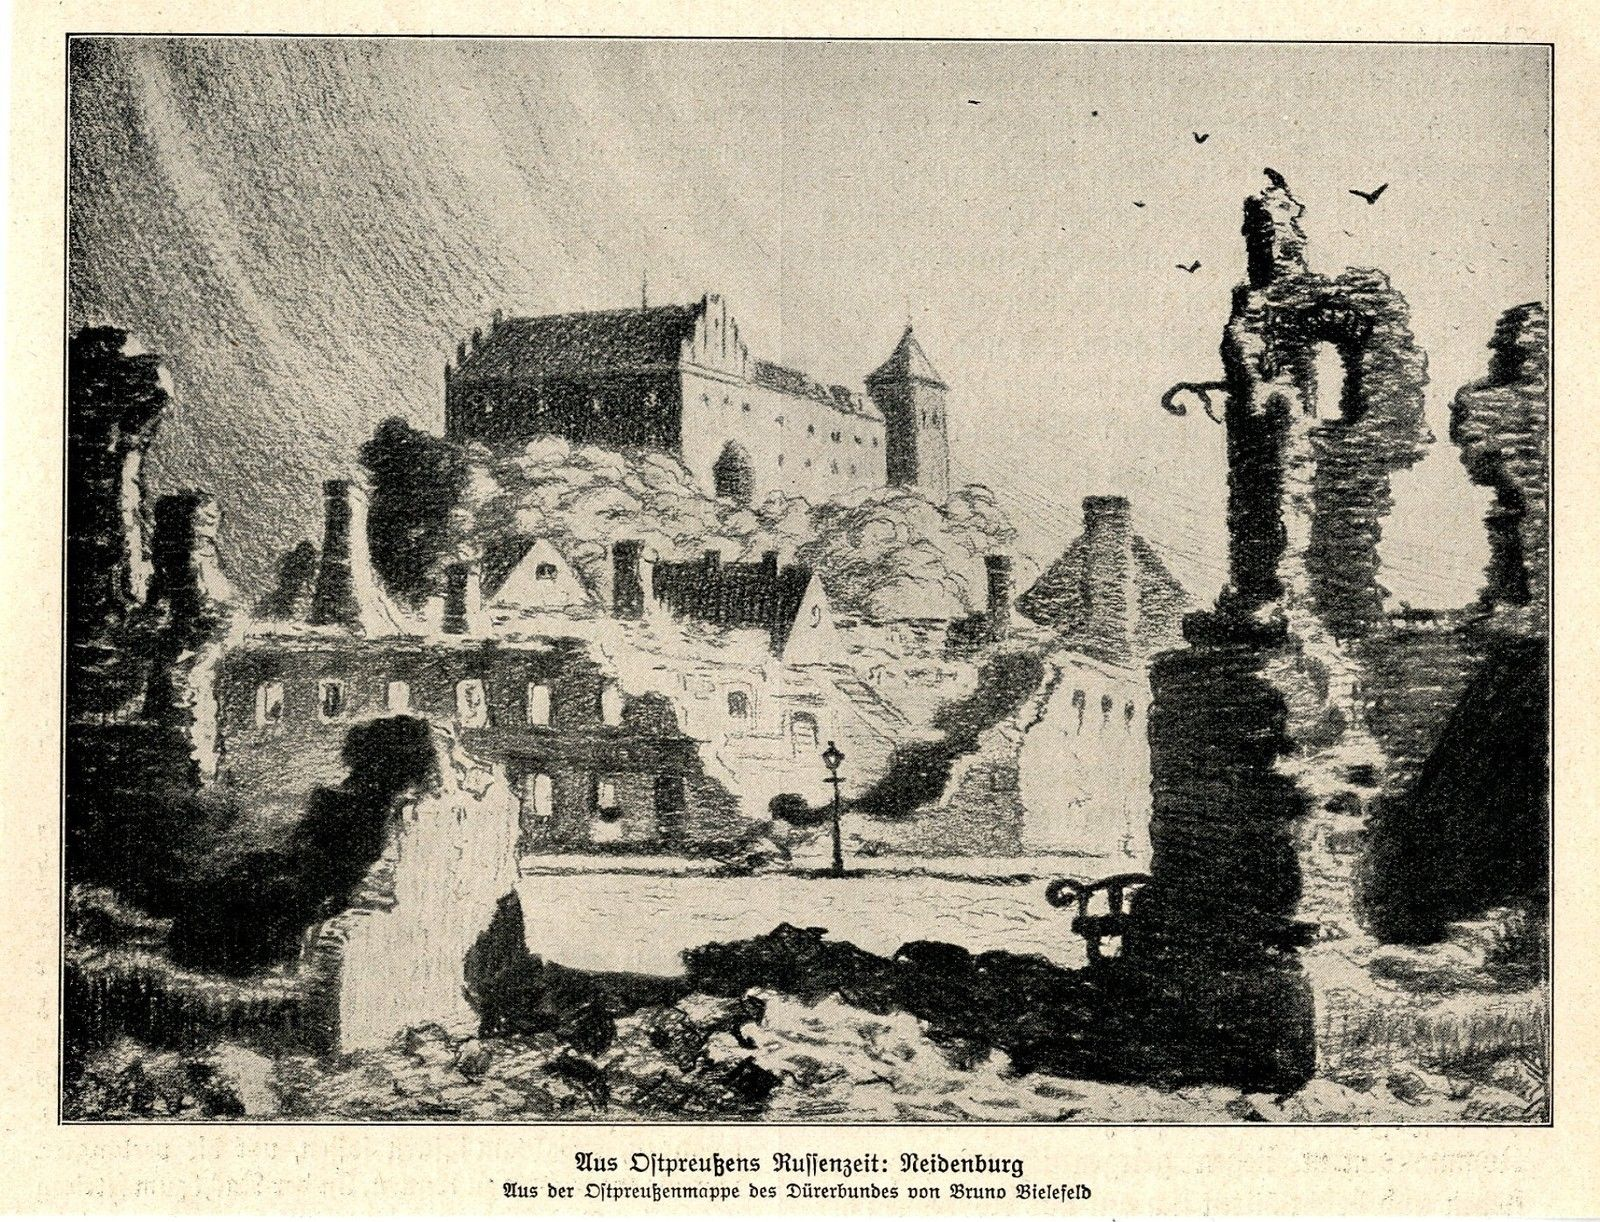 1914-Ostpreussen-Die-Russen-in-Land-Neidenburg-WW1